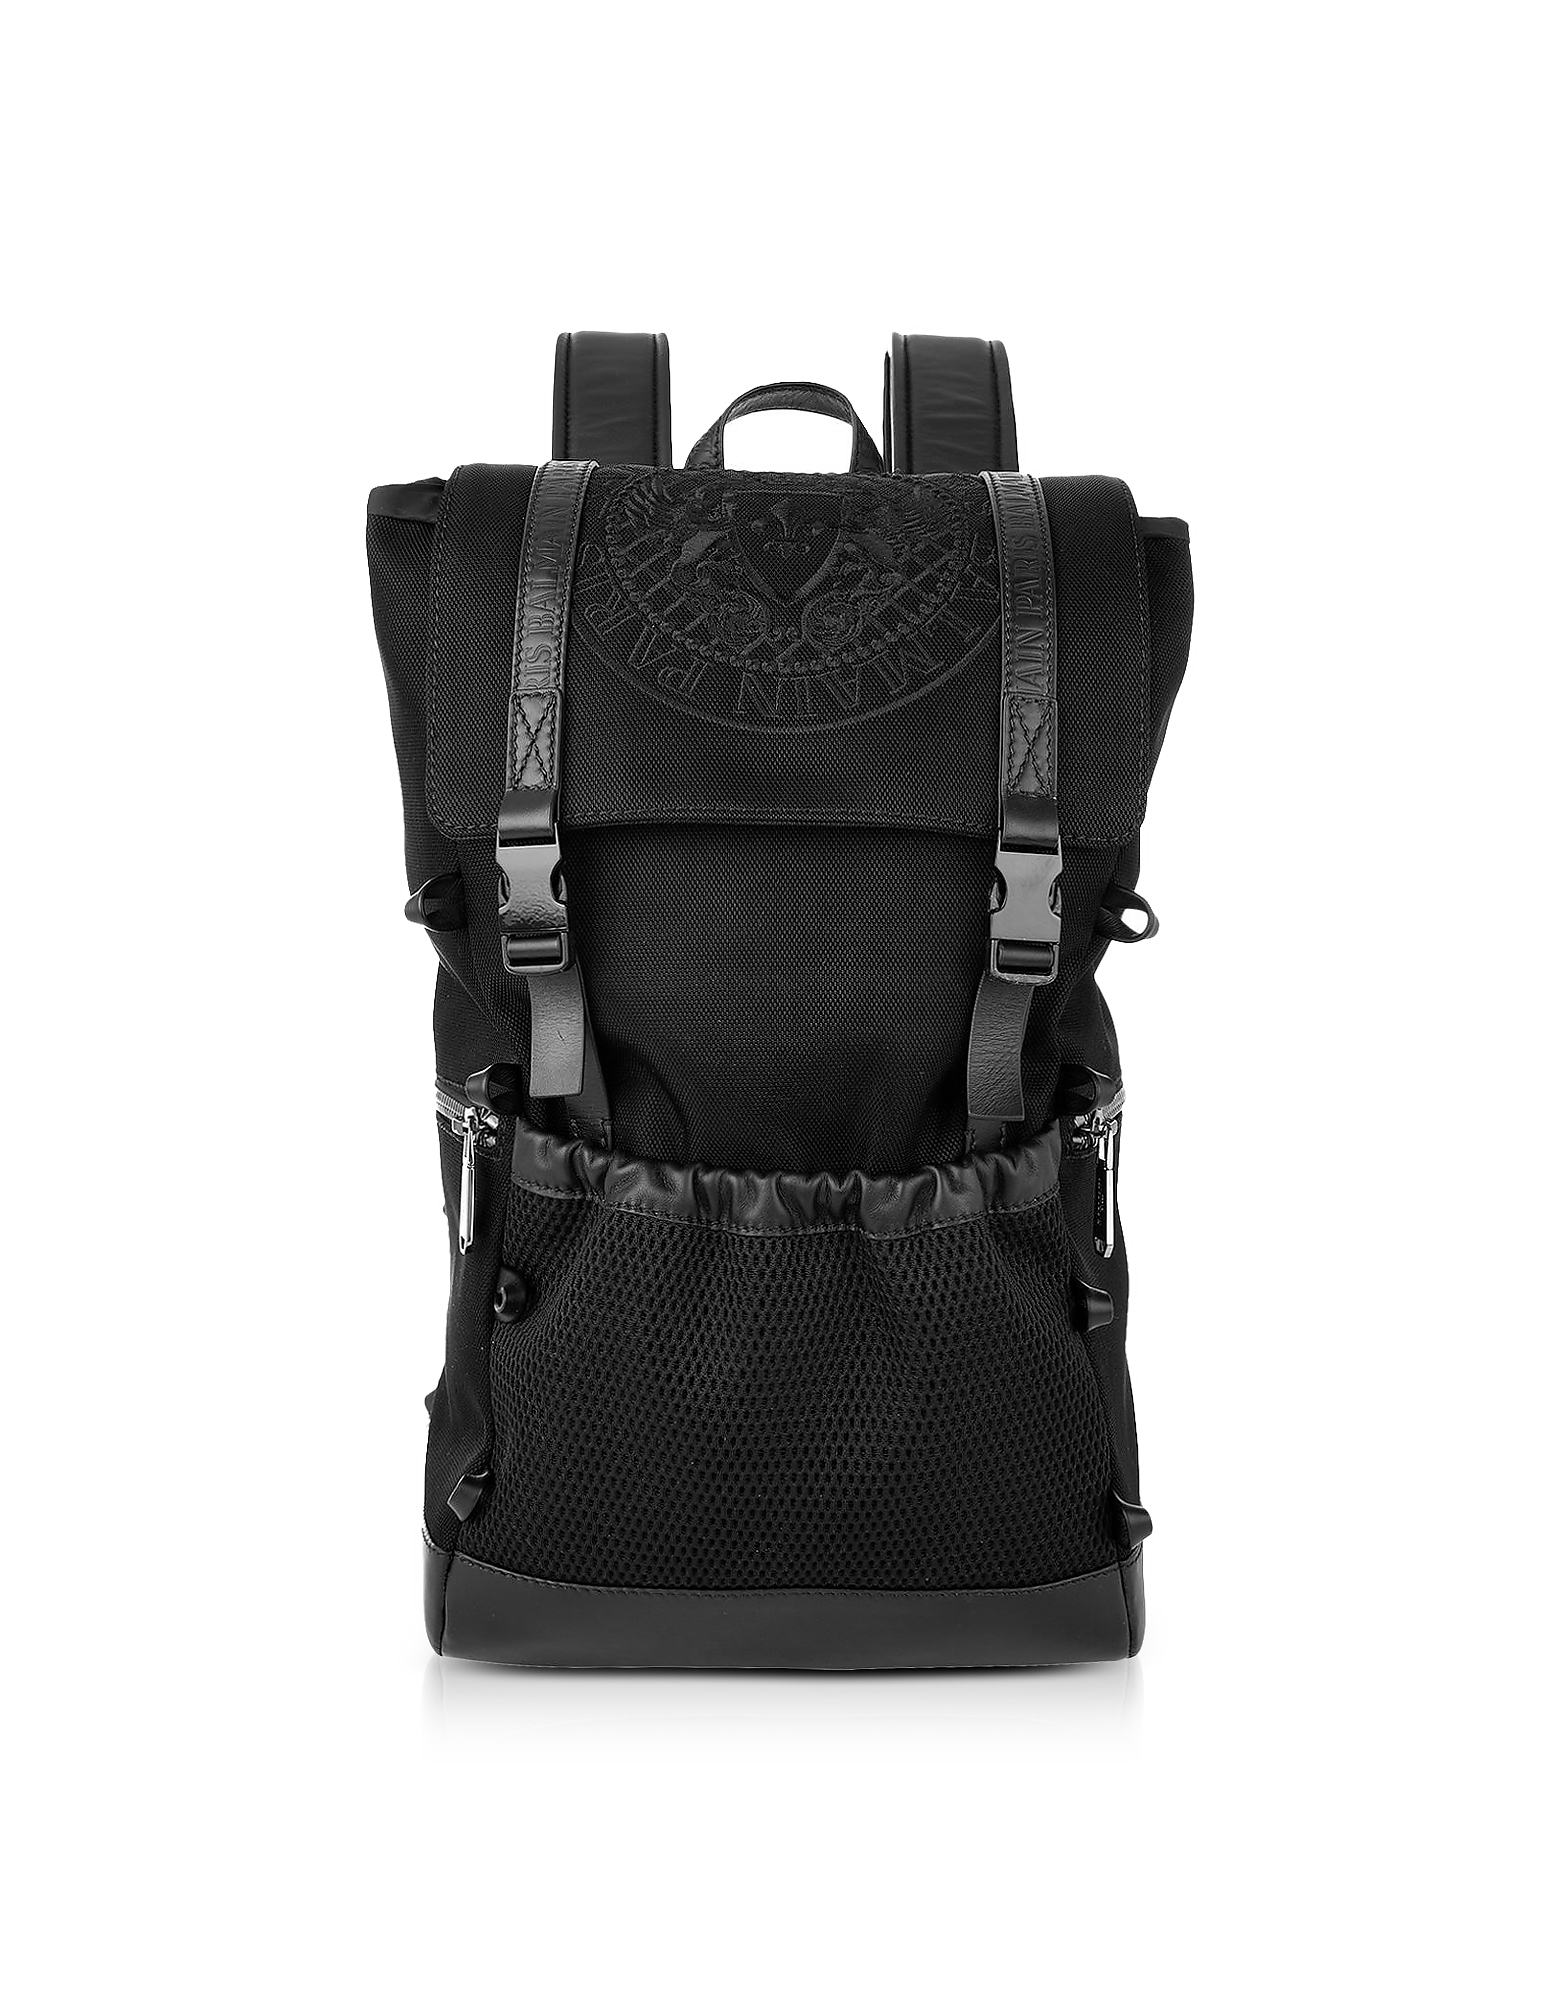 Balmain Backpacks, Black Nylon Men's Climb Backpack